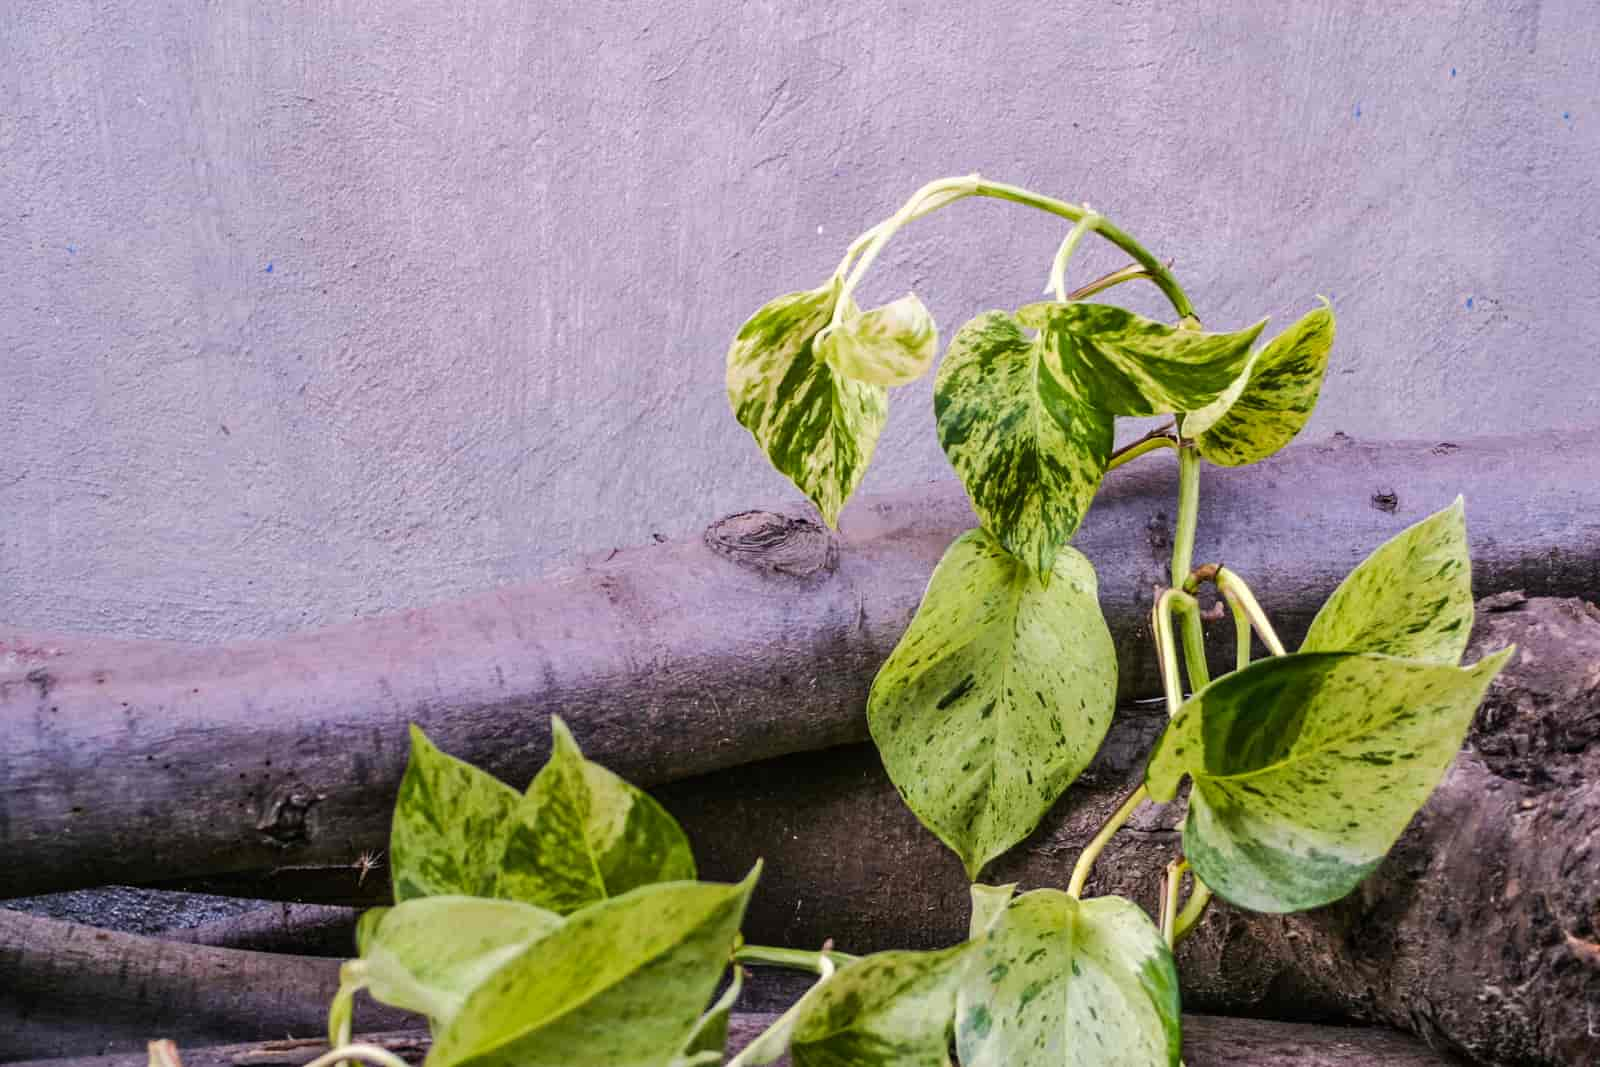 What can I do with long pothos vines